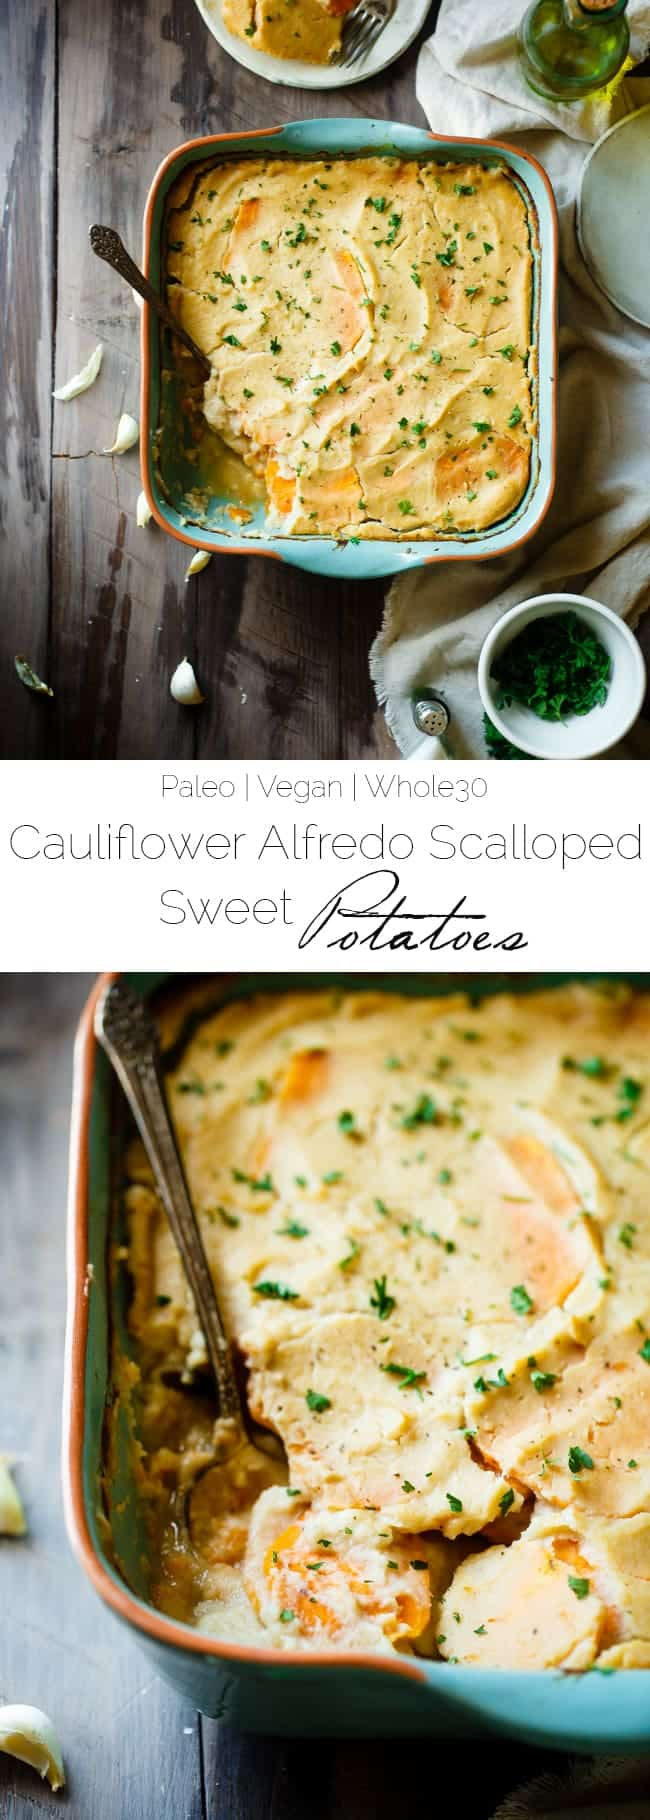 Cauliflower Alfredo Vegan Scalloped Sweet Potatoes - This whole30 compliant side dish is so creamy you'll never know they're under 200 calories, paleo friendly and have hidden veggies! Perfect for Thanksgiving! | Foodfaithfitness.com | @FoodFaithFit